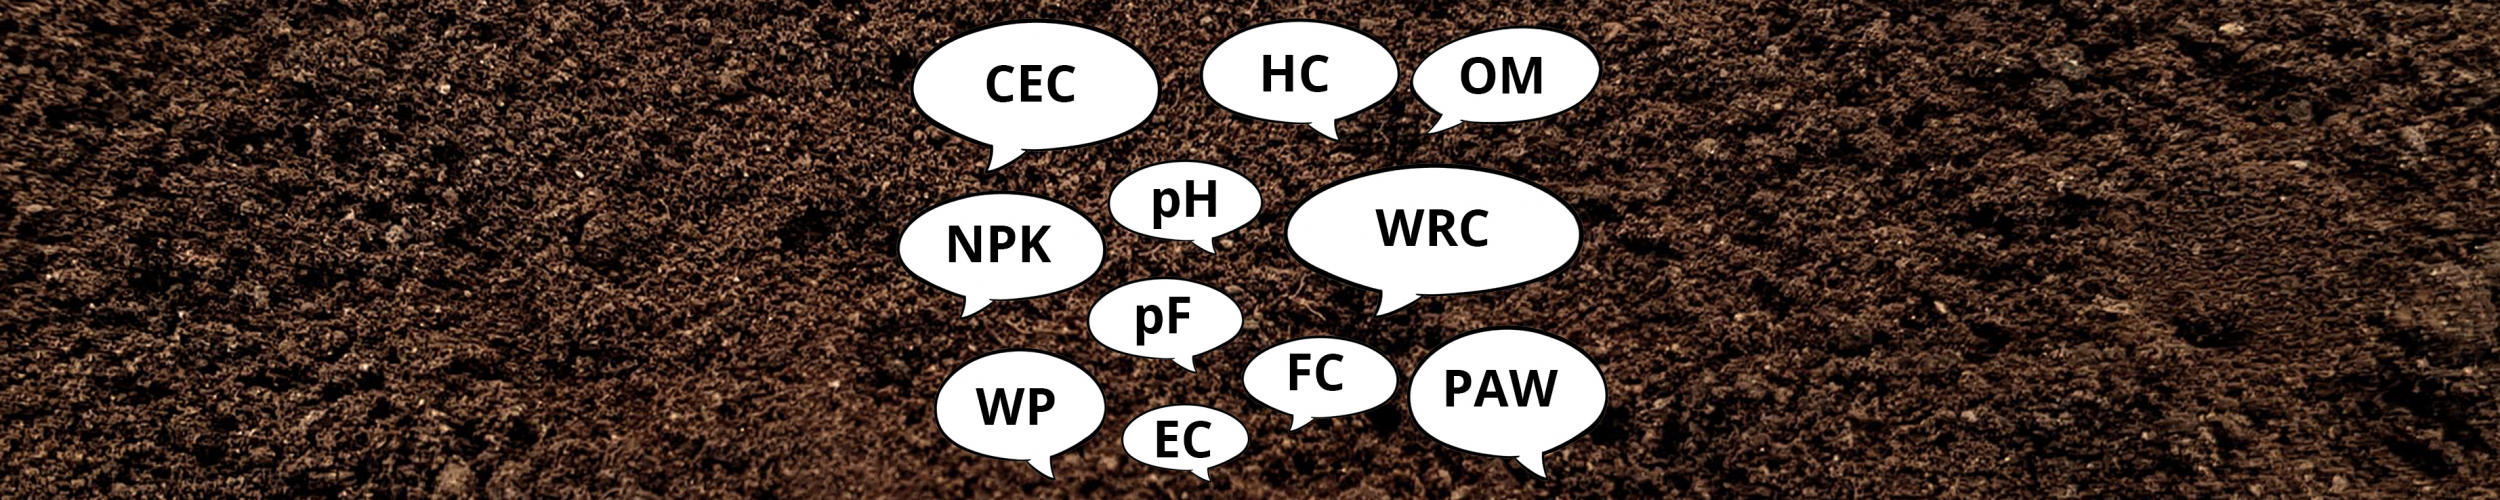 Soil and its acronyms